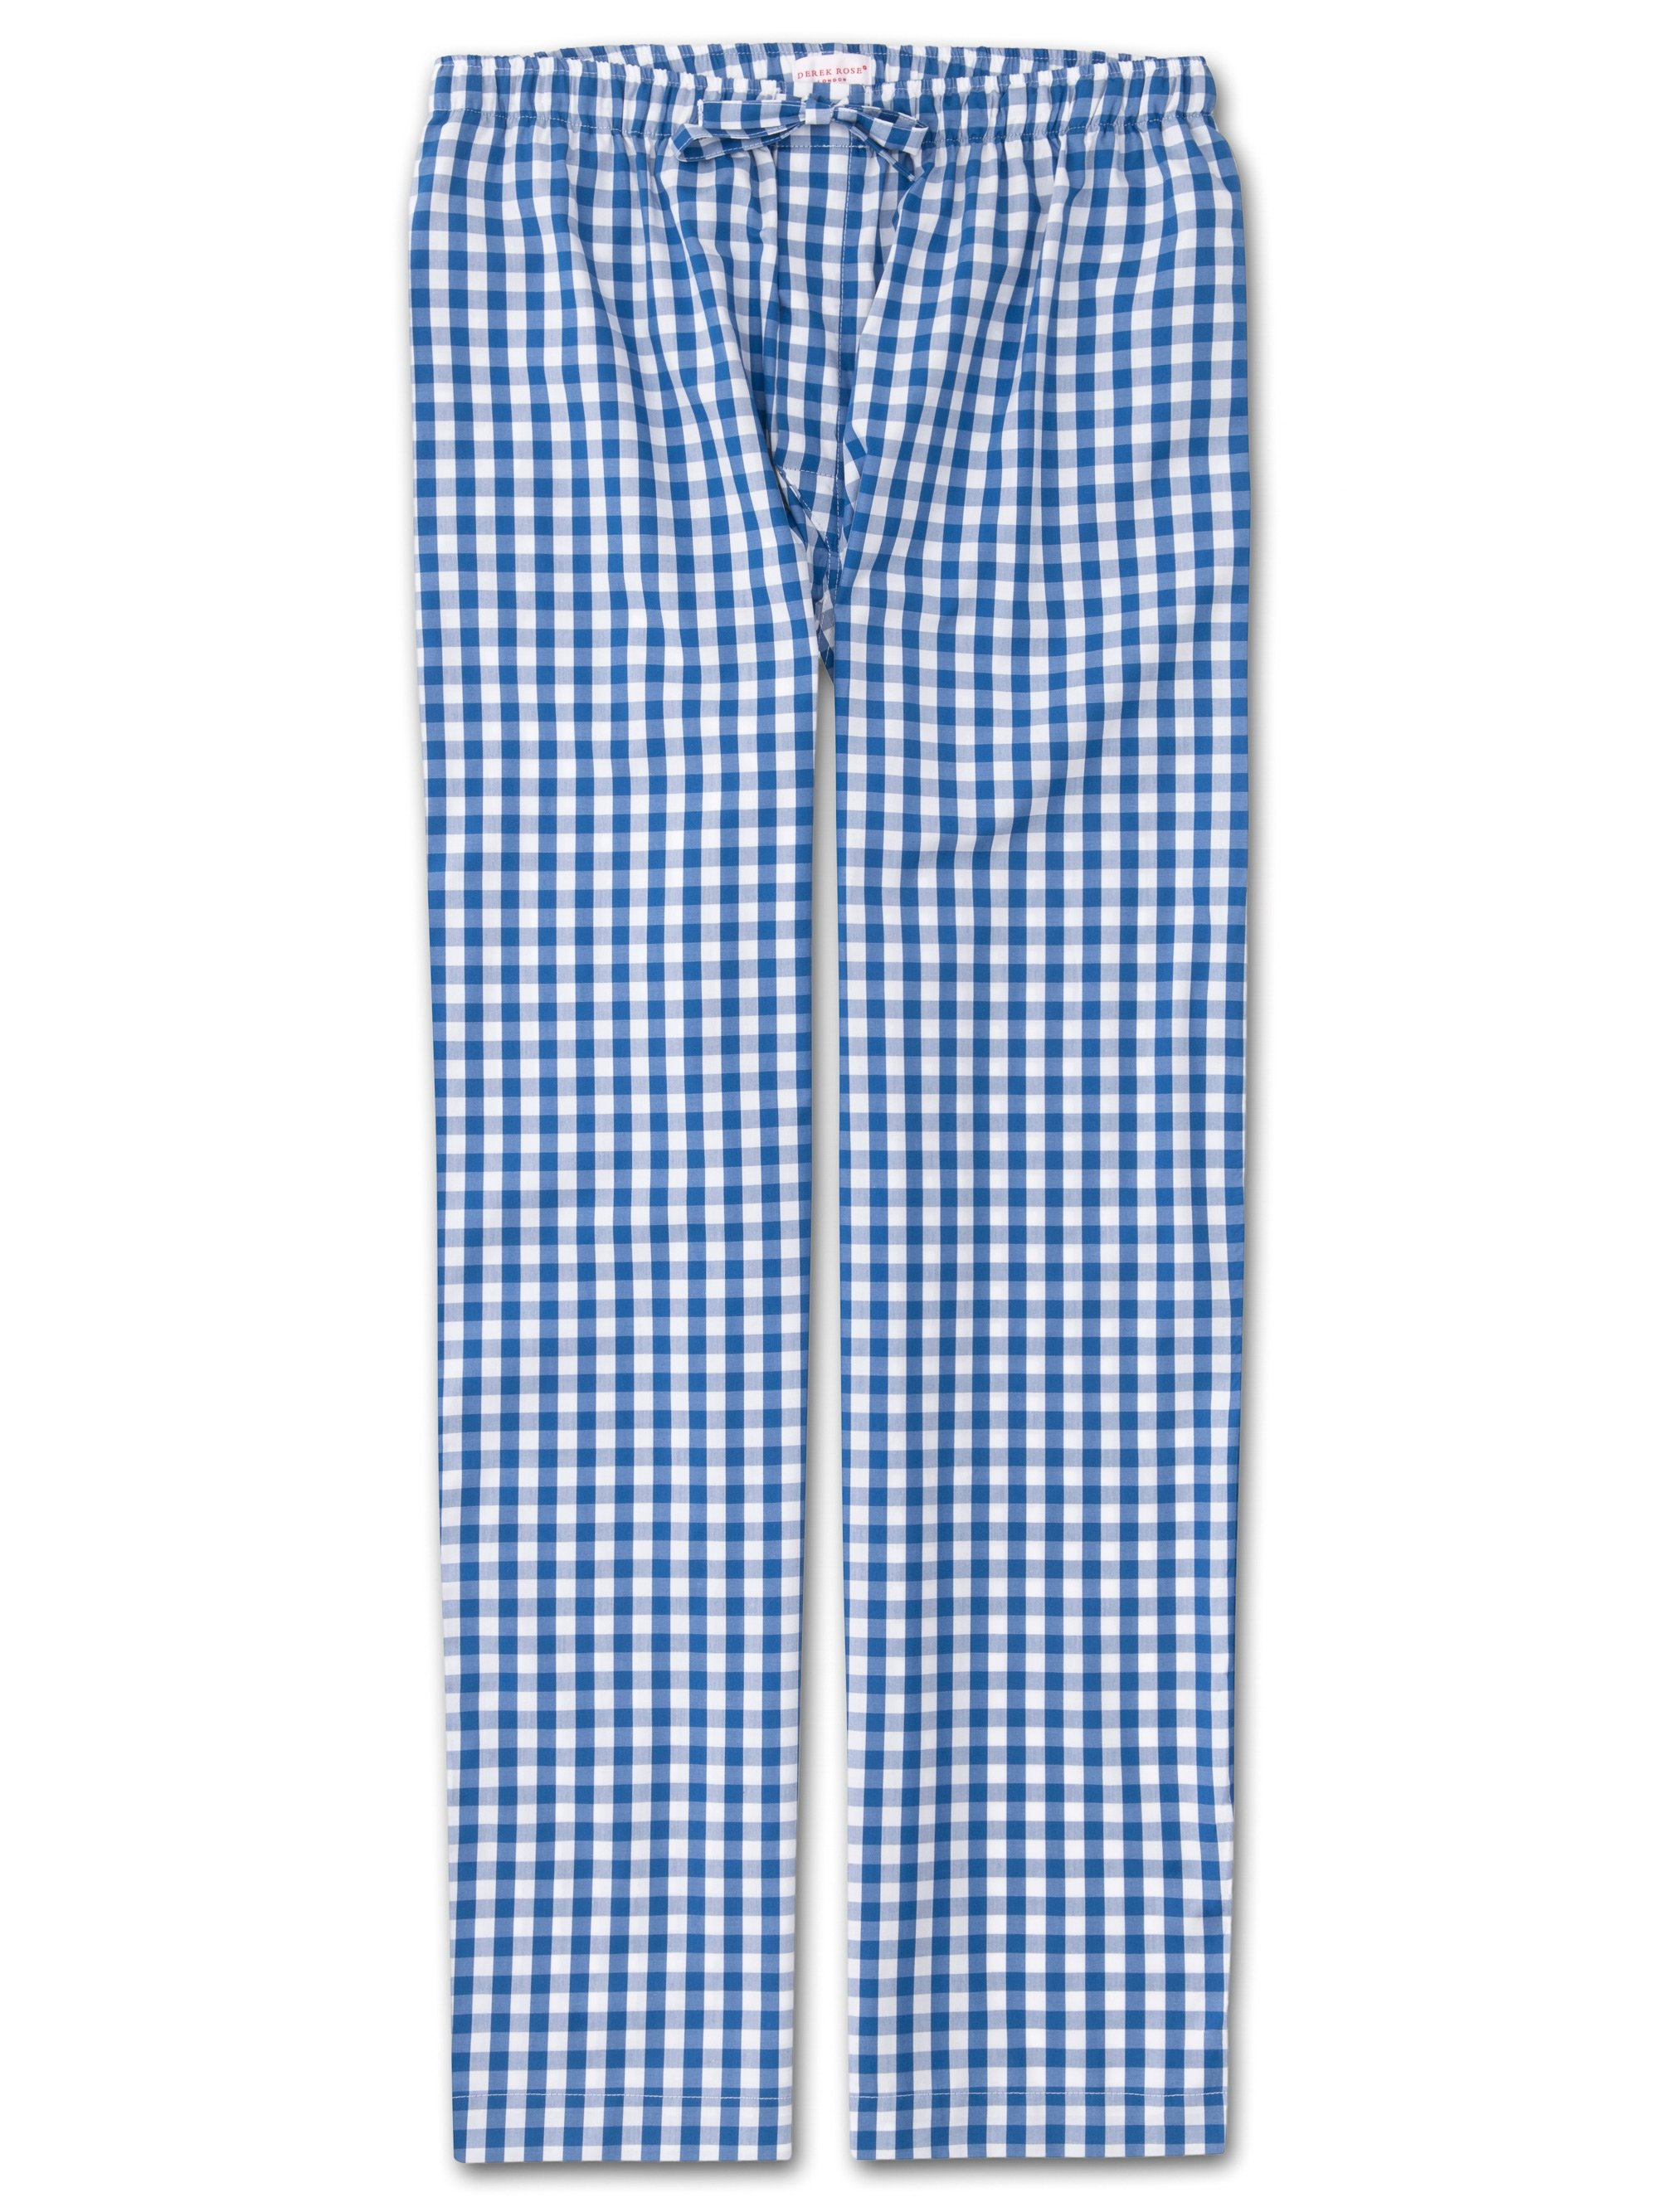 Men's Lounge Trousers Barker 26 Cotton Check Blue